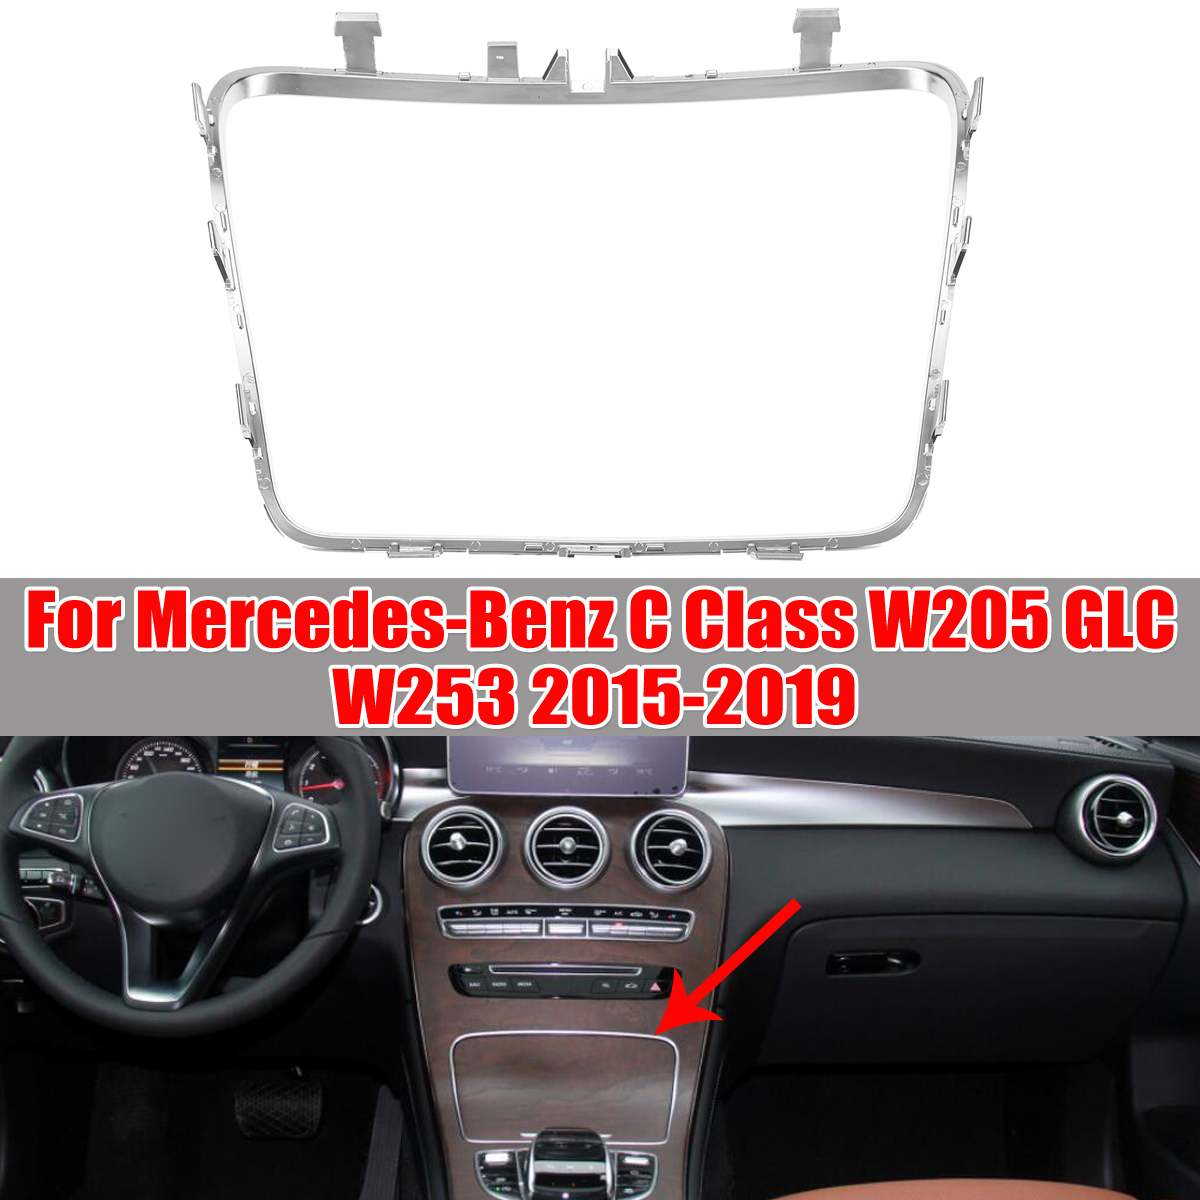 W253 <font><b>W205</b></font> Car Water Cup Holder Strip Plating Ashtray Trim Ring For <font><b>Mercedes</b></font> For Benz C Class W253 <font><b>W205</b></font> GLC200 2015-2019 image